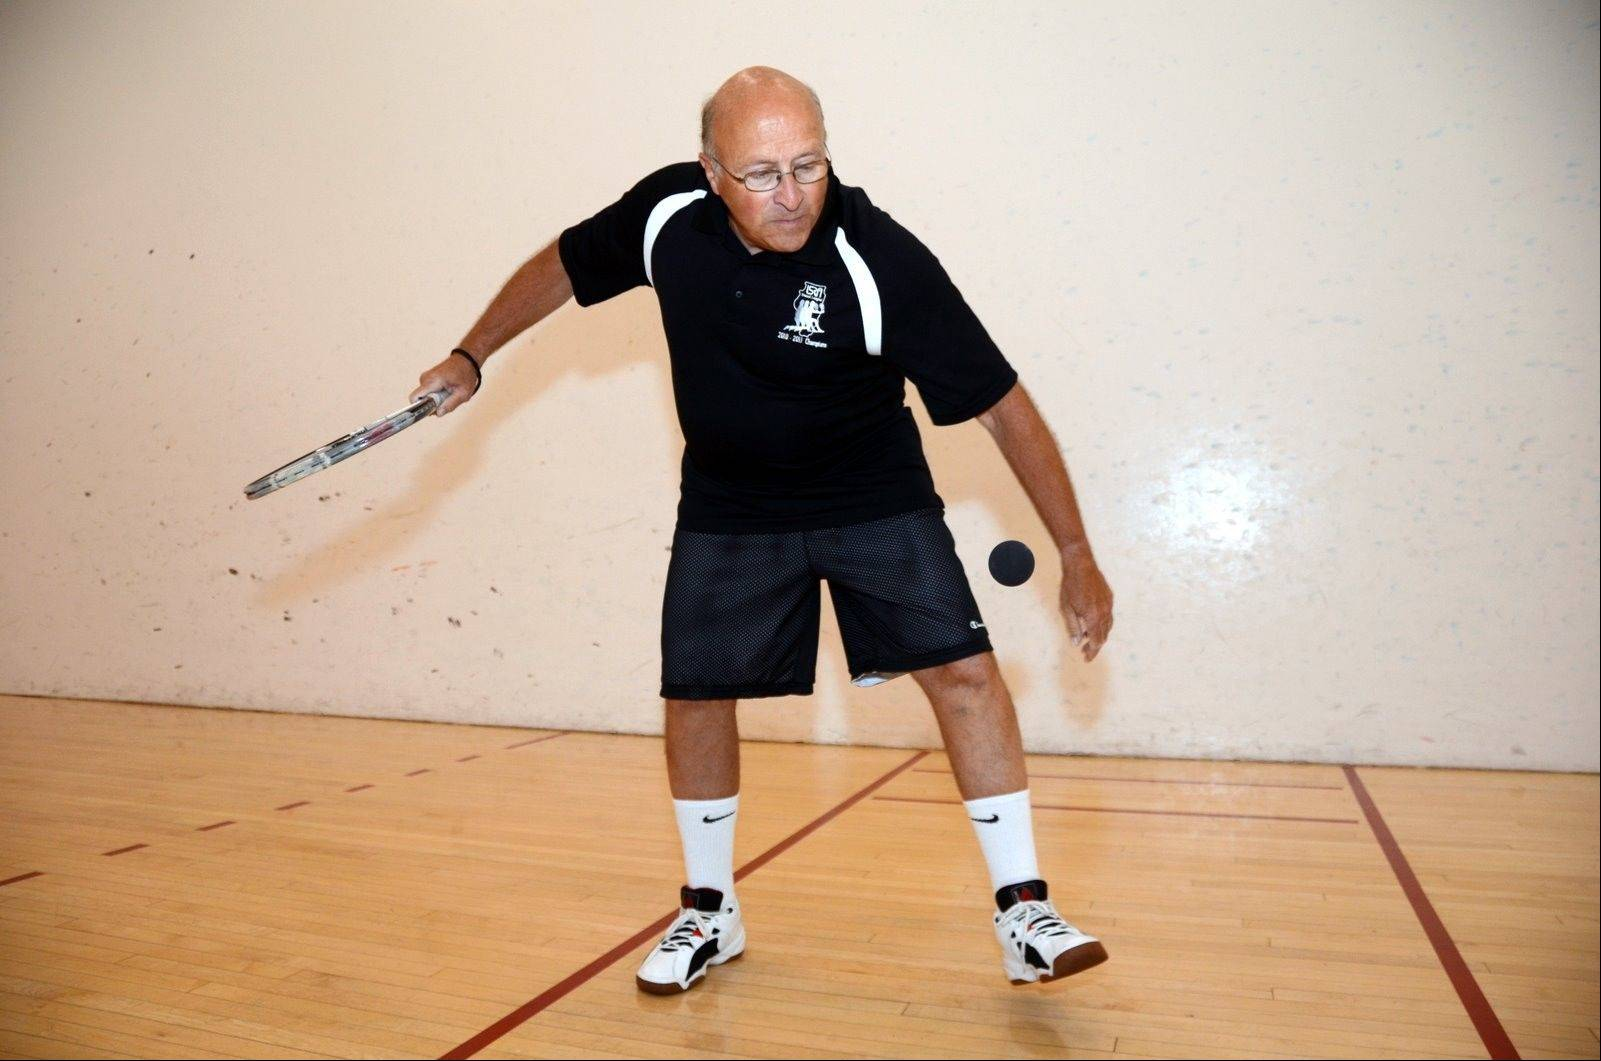 Art Michaely, 71, of Des Plaines, usually plays racquetball several times a week.